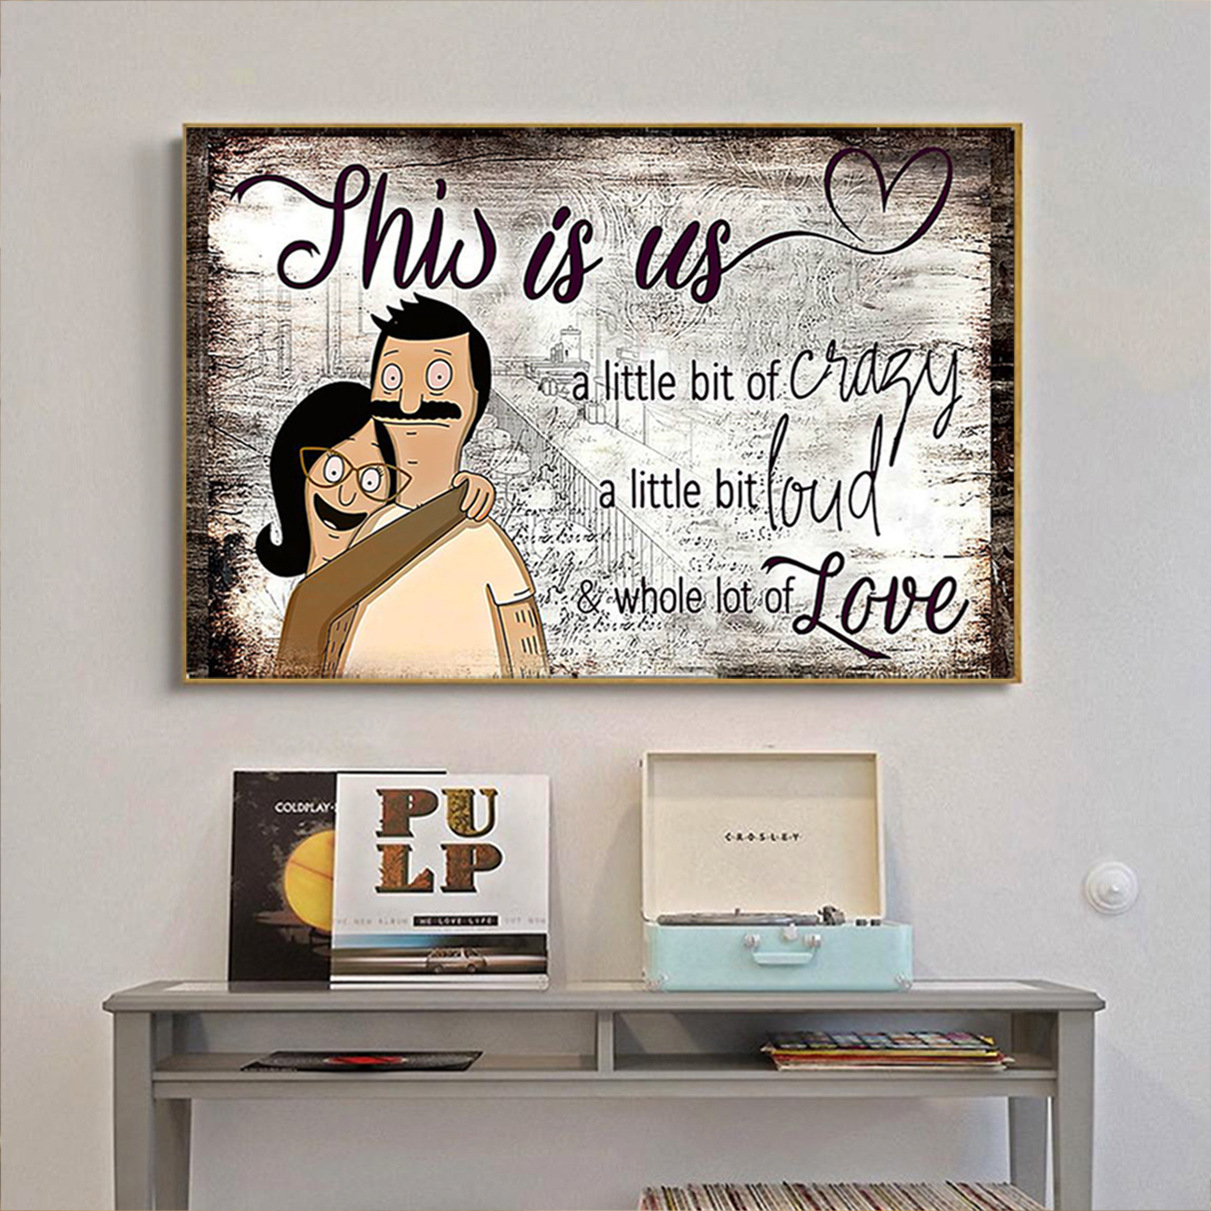 Bob and linda belcher this is us poster A1